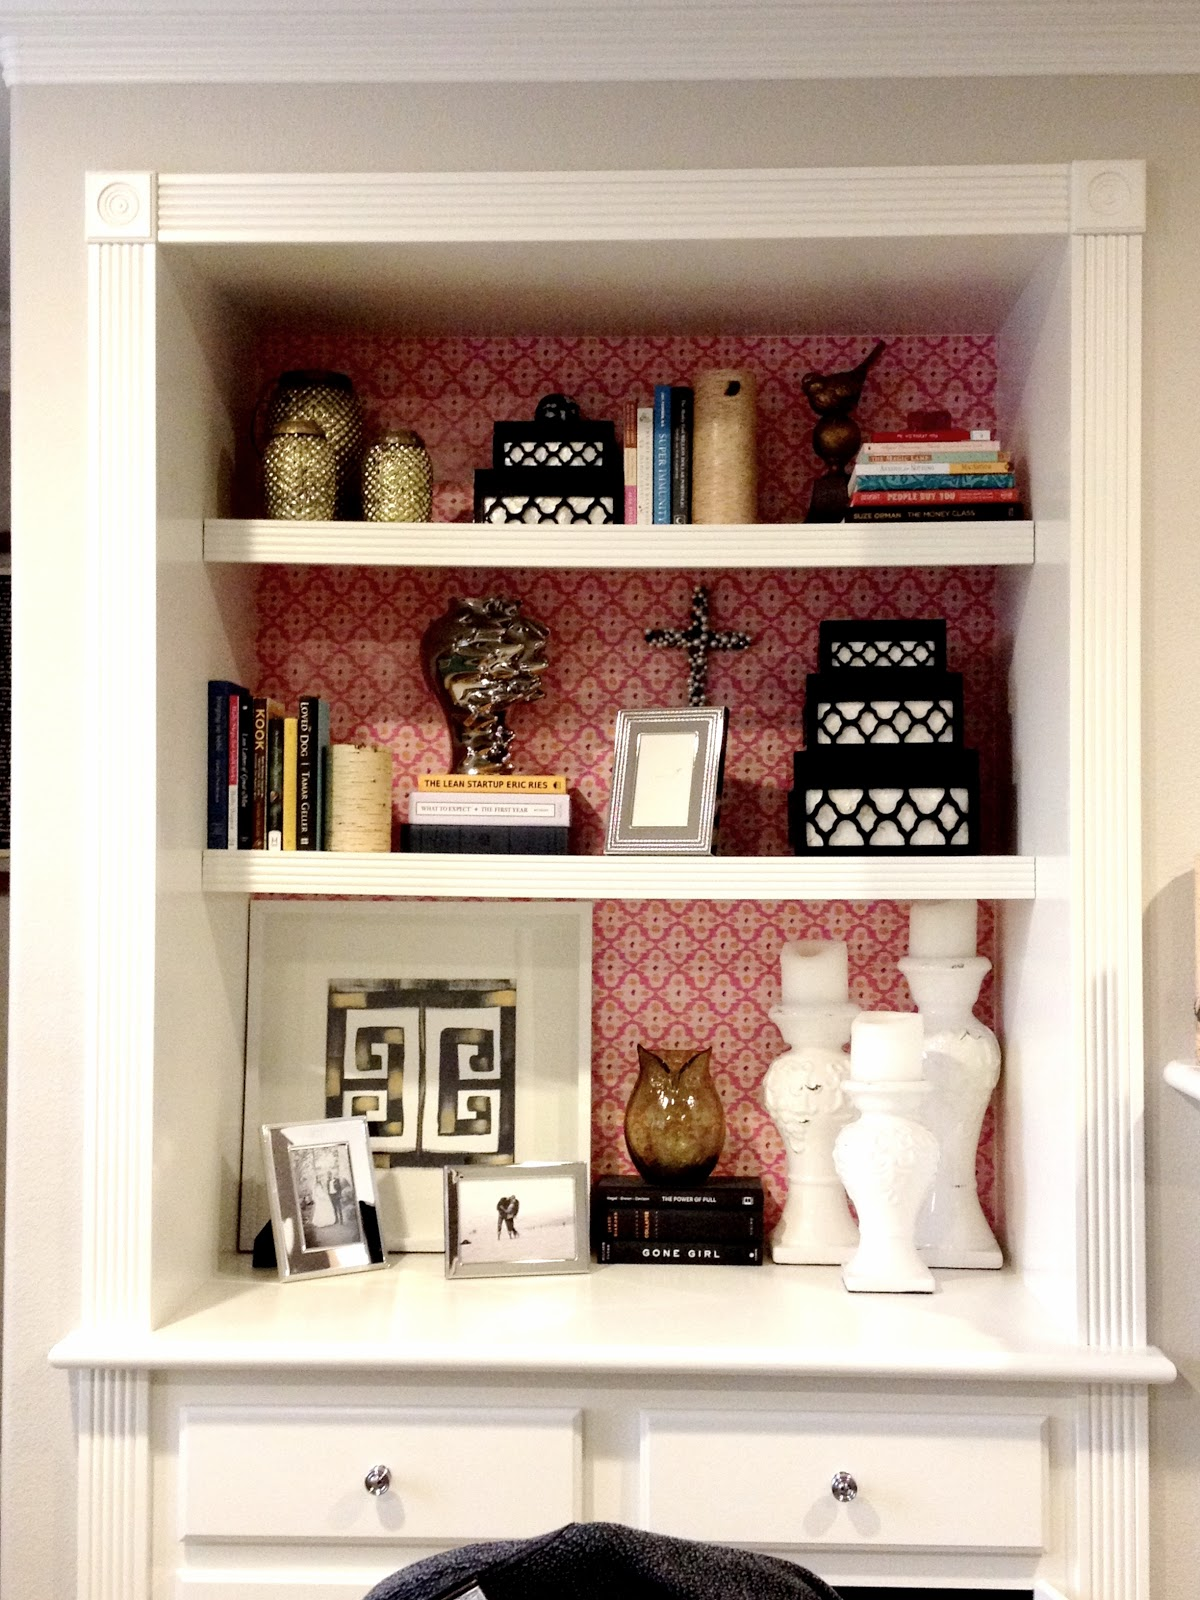 wallpaper shelf